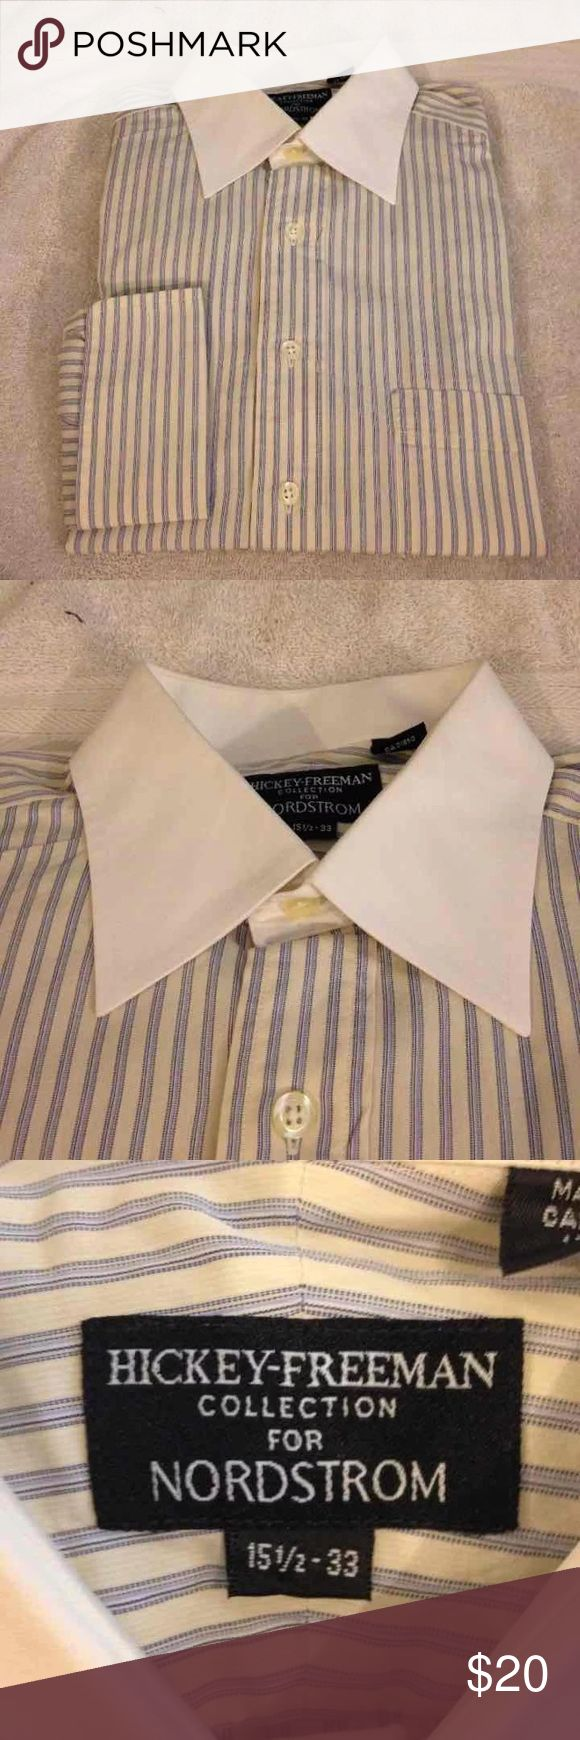 Hickey Freeman Yellow Stripe Shirt 15.5-33 Hickey Freeman Yellow, White and Navy Stripe White Collar French Cuff Dress Shirt size 15.5-33! Like new! Please make reasonable offers and bundle! Ask questions! :) Hickey Freeman Shirts Dress Shirts